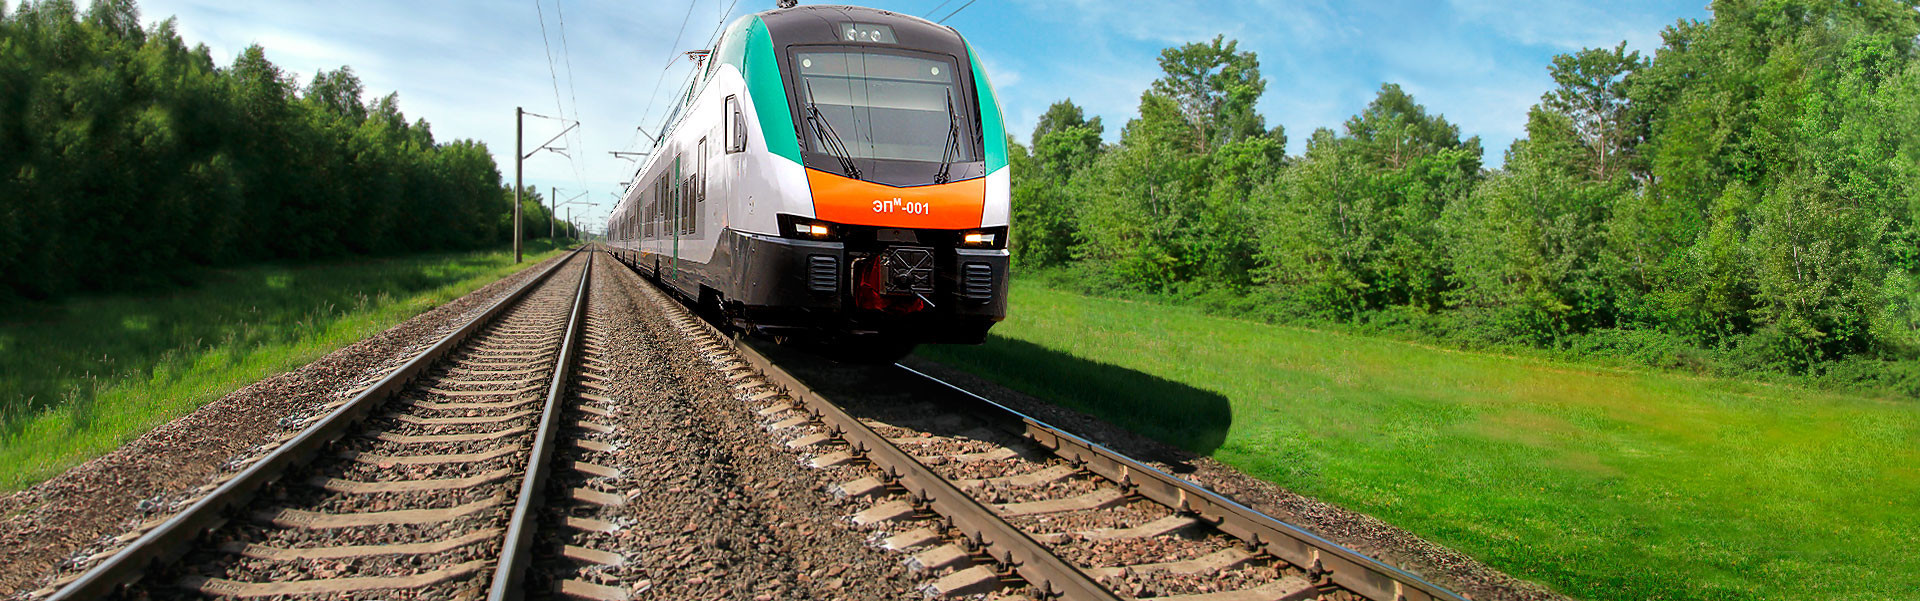 Belarusian Railways to increase rail service during 2019 European Games